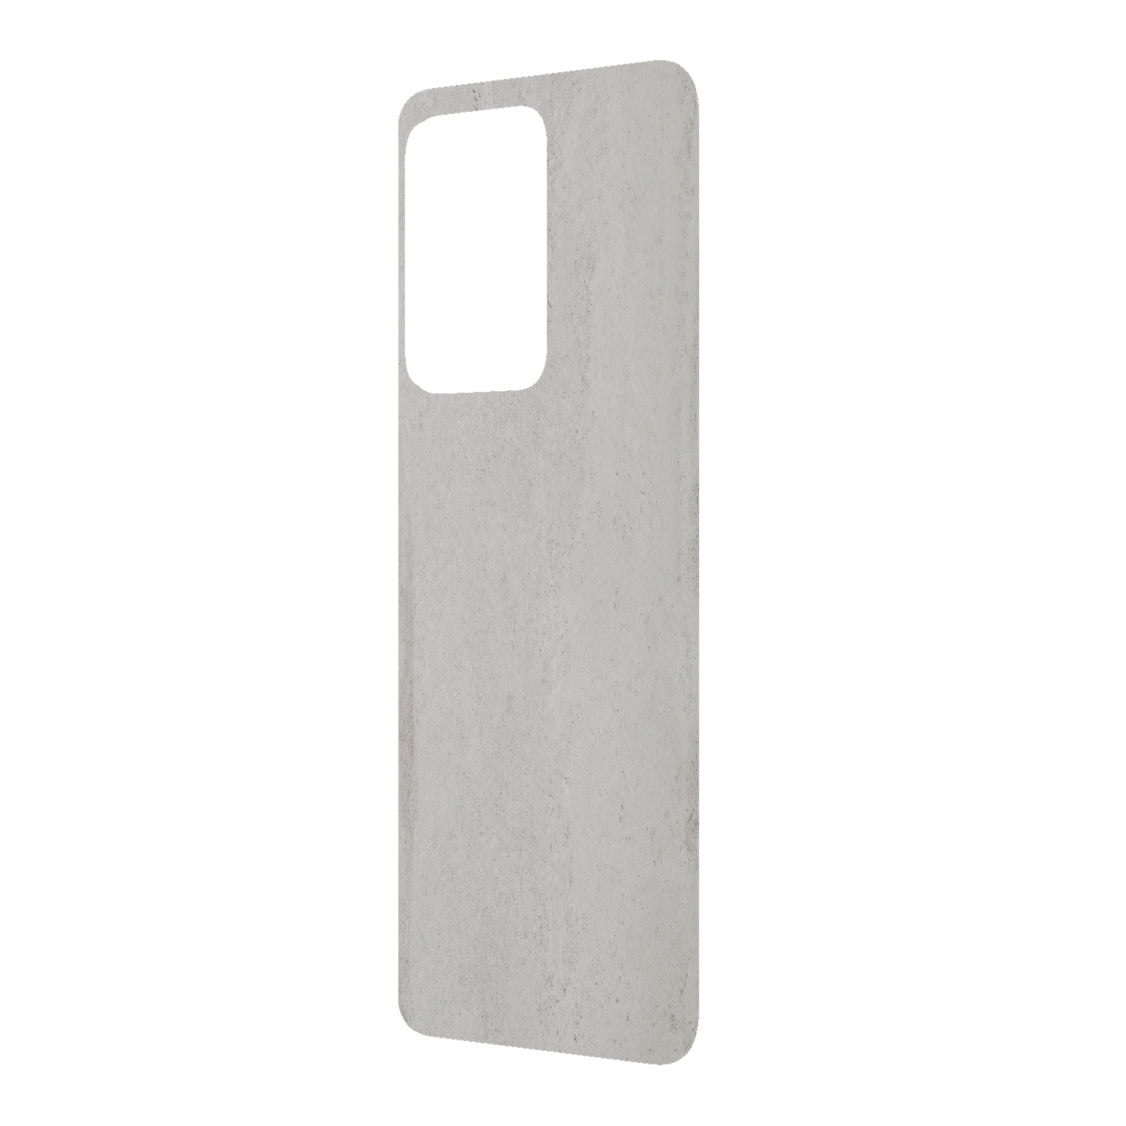 RhinoShield Impact Skin For Samsung S20 Ultra - Concrete - Macintosh Addict